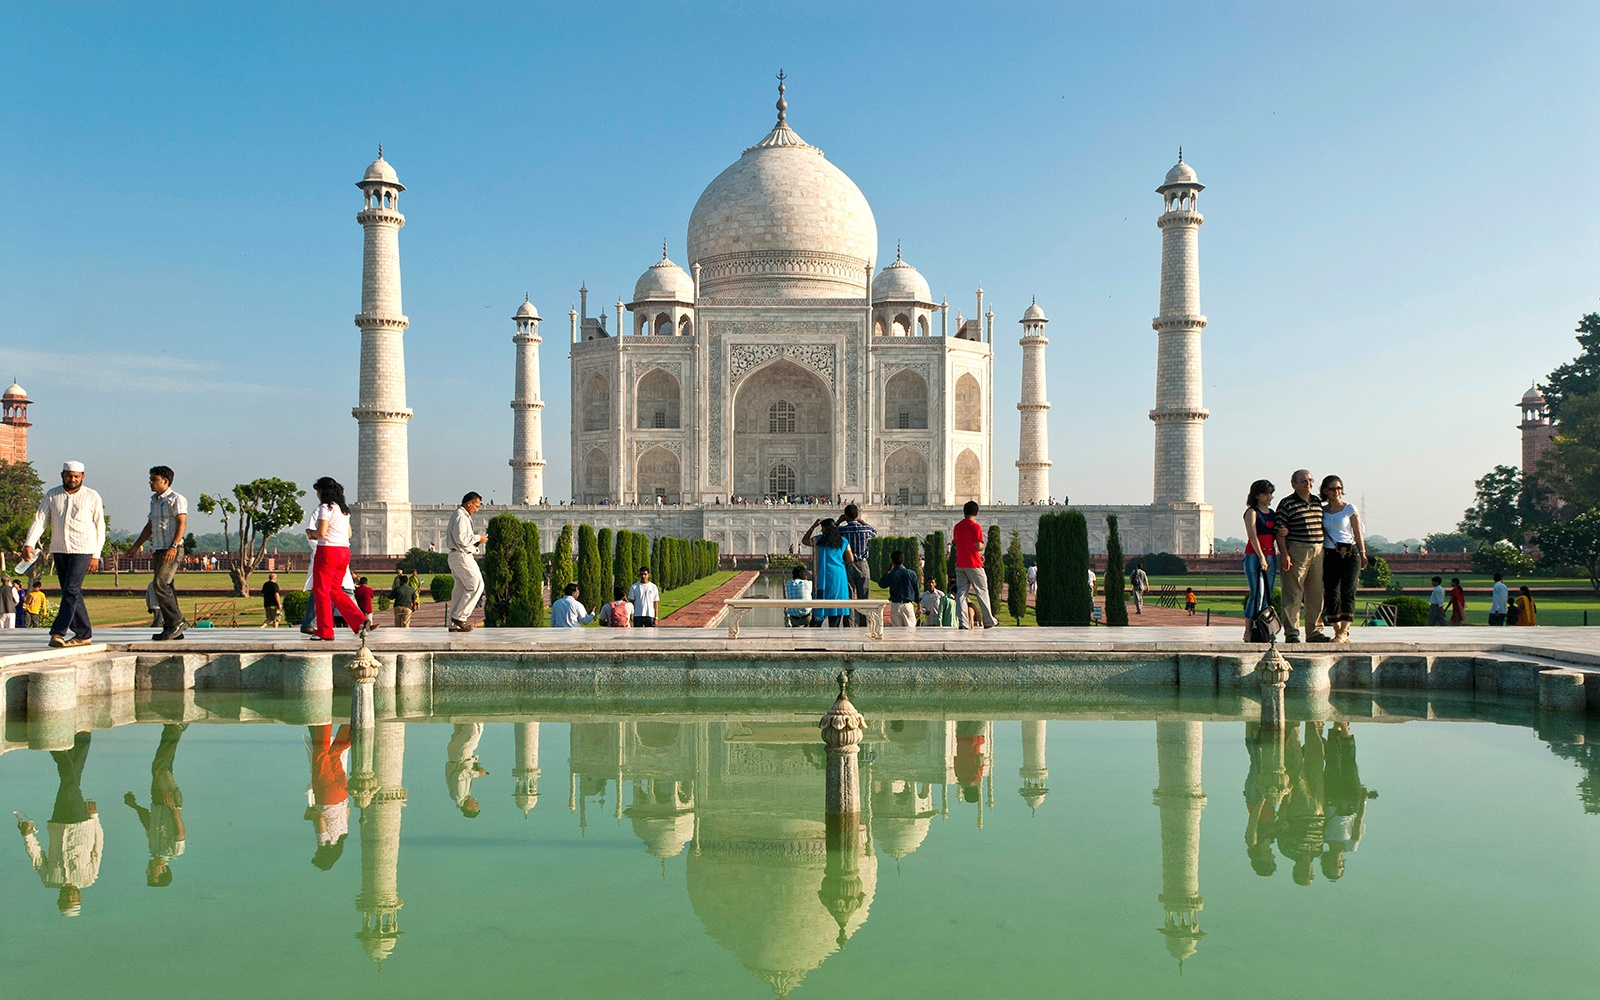 The most popular attraction in the world 25